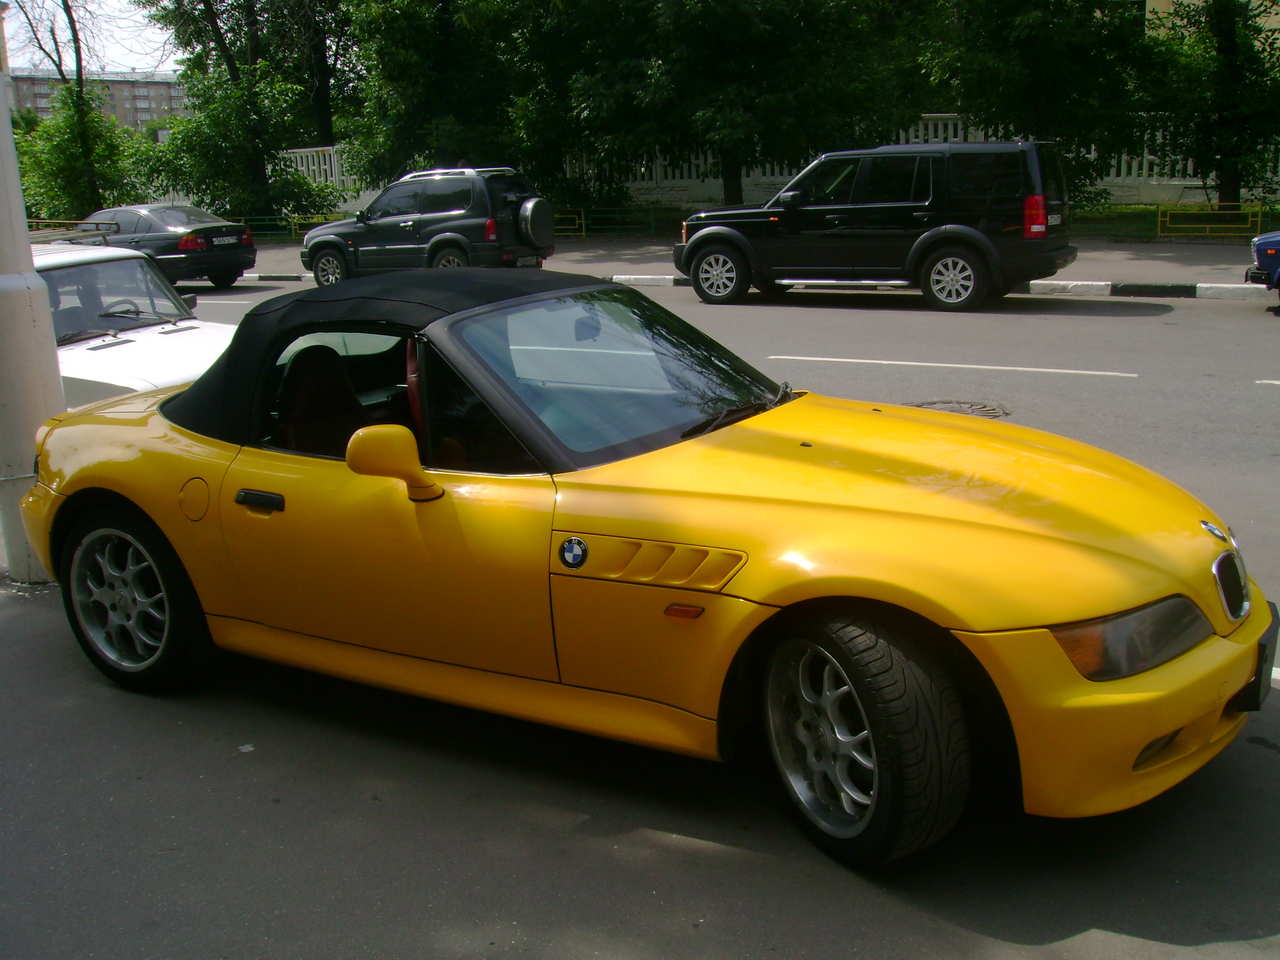 1997 Bmw Z3 Specs Engine Size 1850cm3 Fuel Type Gasoline Drive Wheels Fr Or Rr Transmission Gearbox Automatic